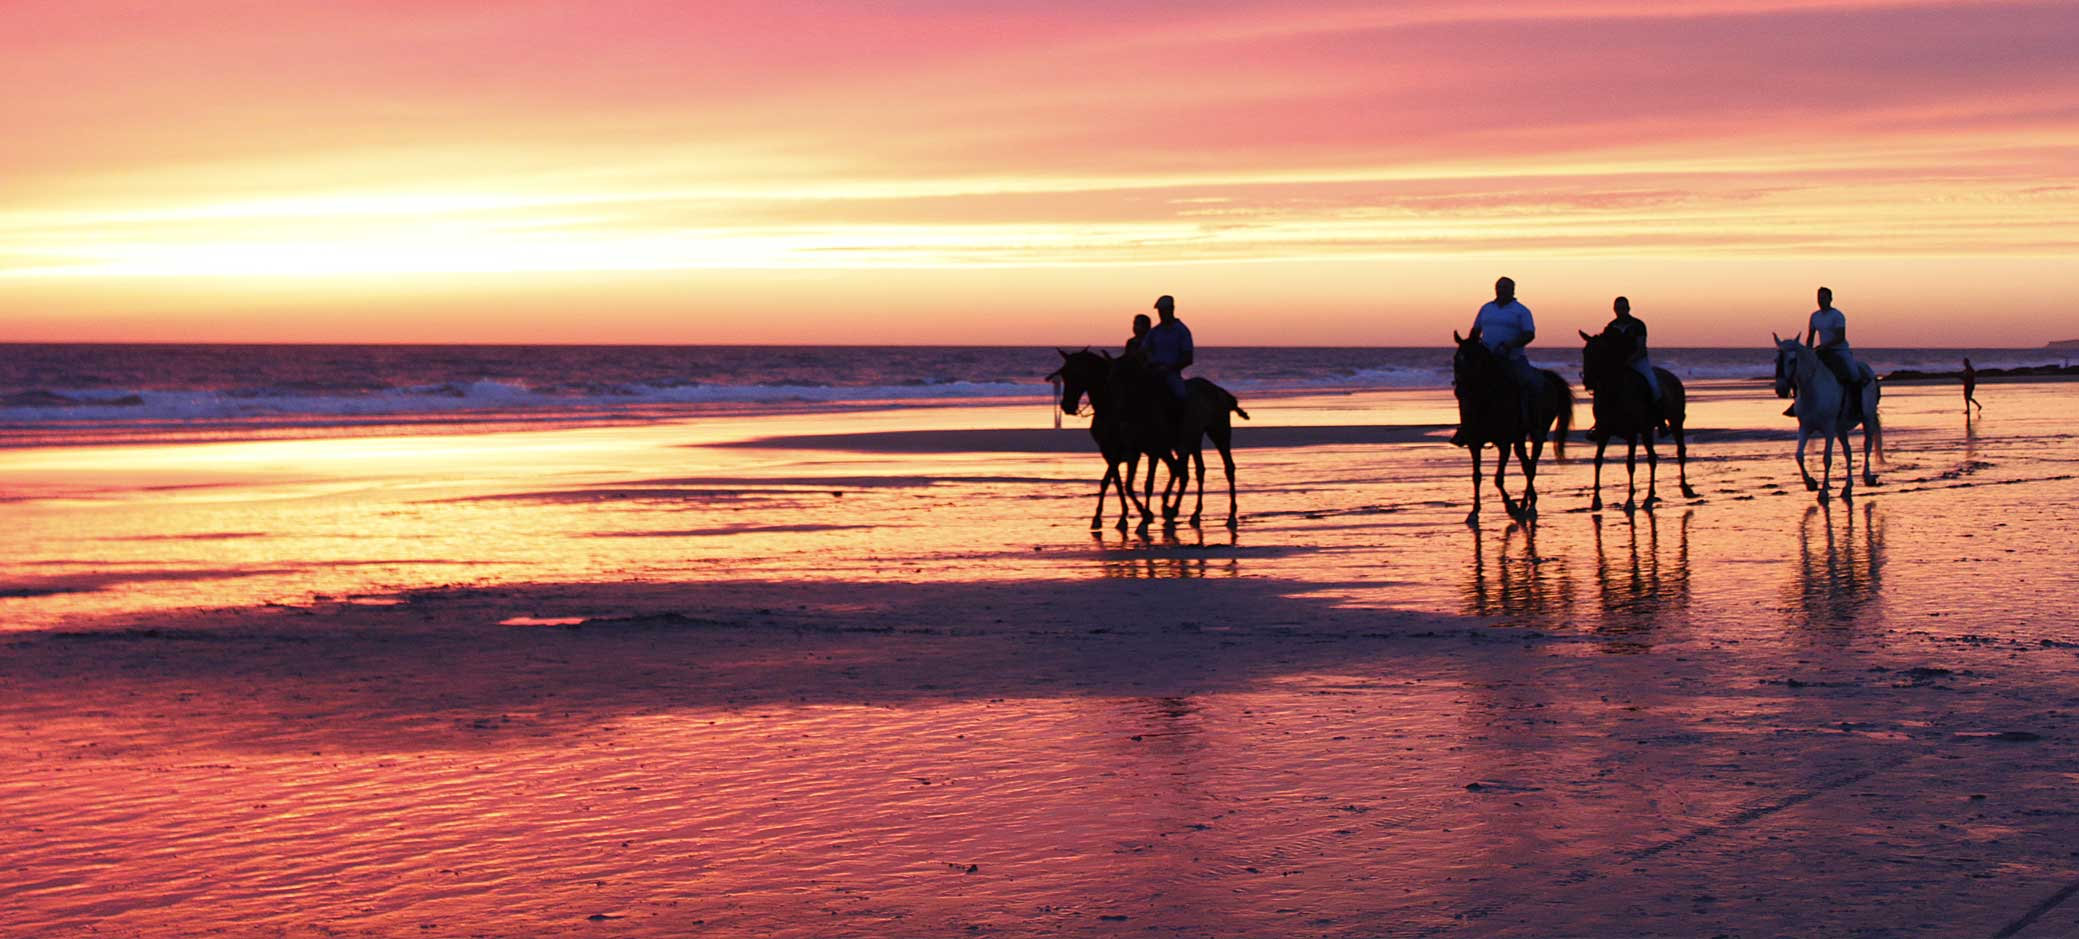 horseback-ride-sunset-beach